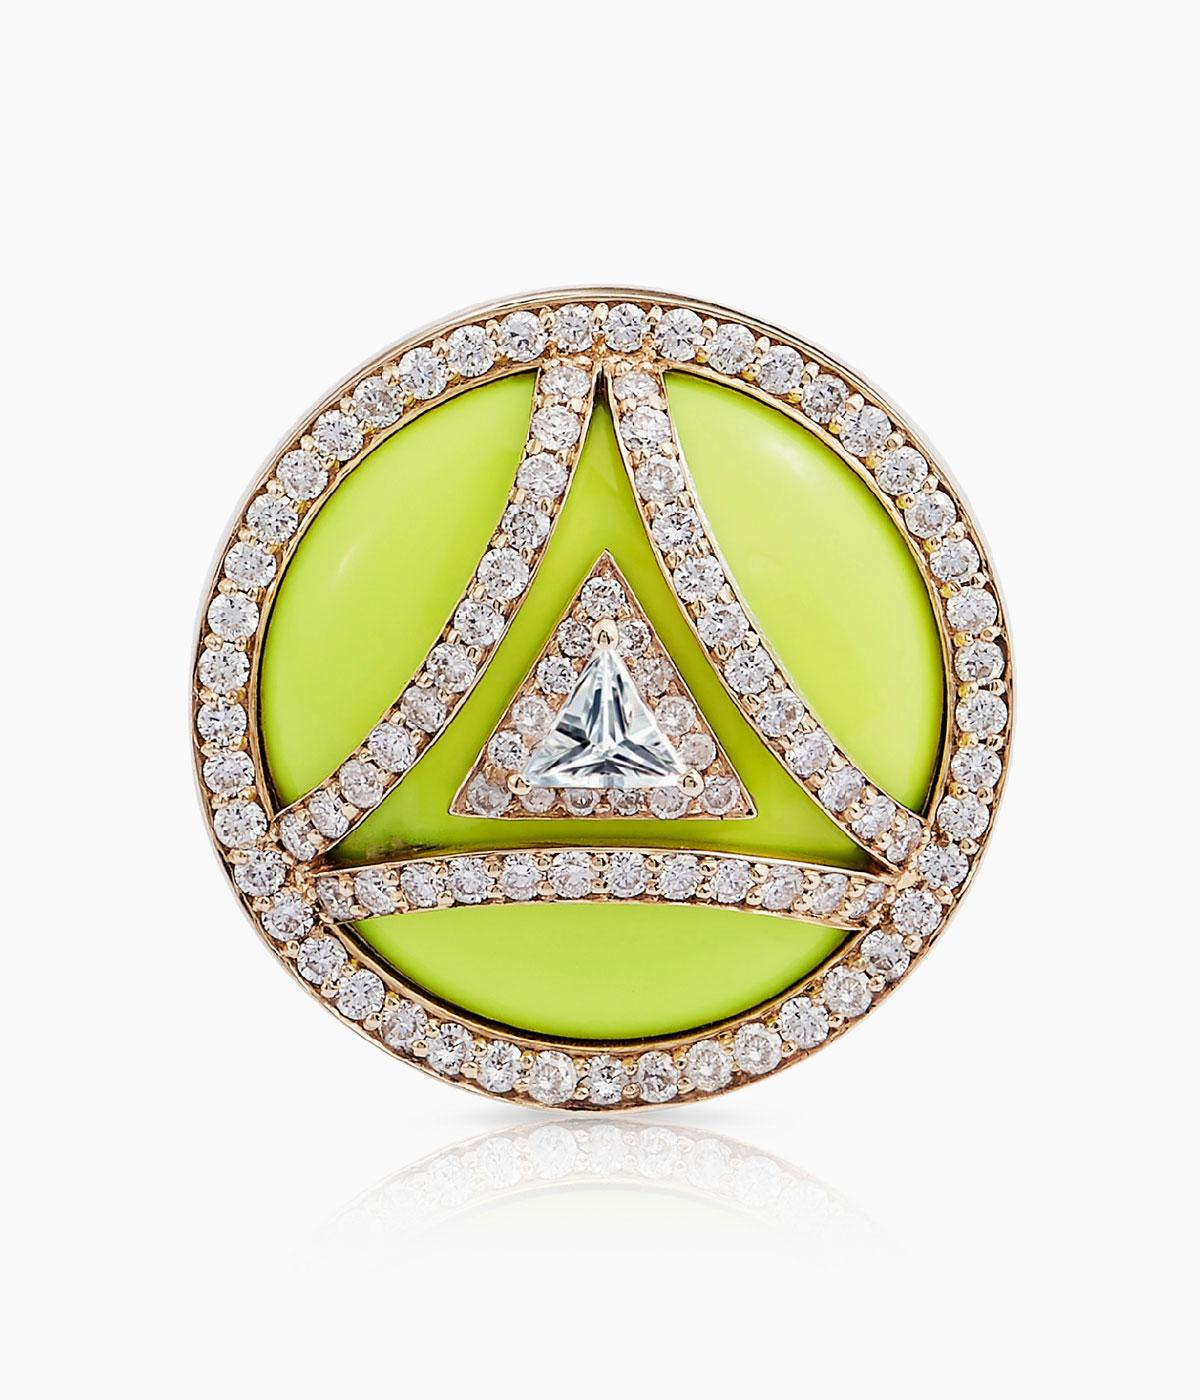 Ring with yellow enamel criss crossed with diamonds